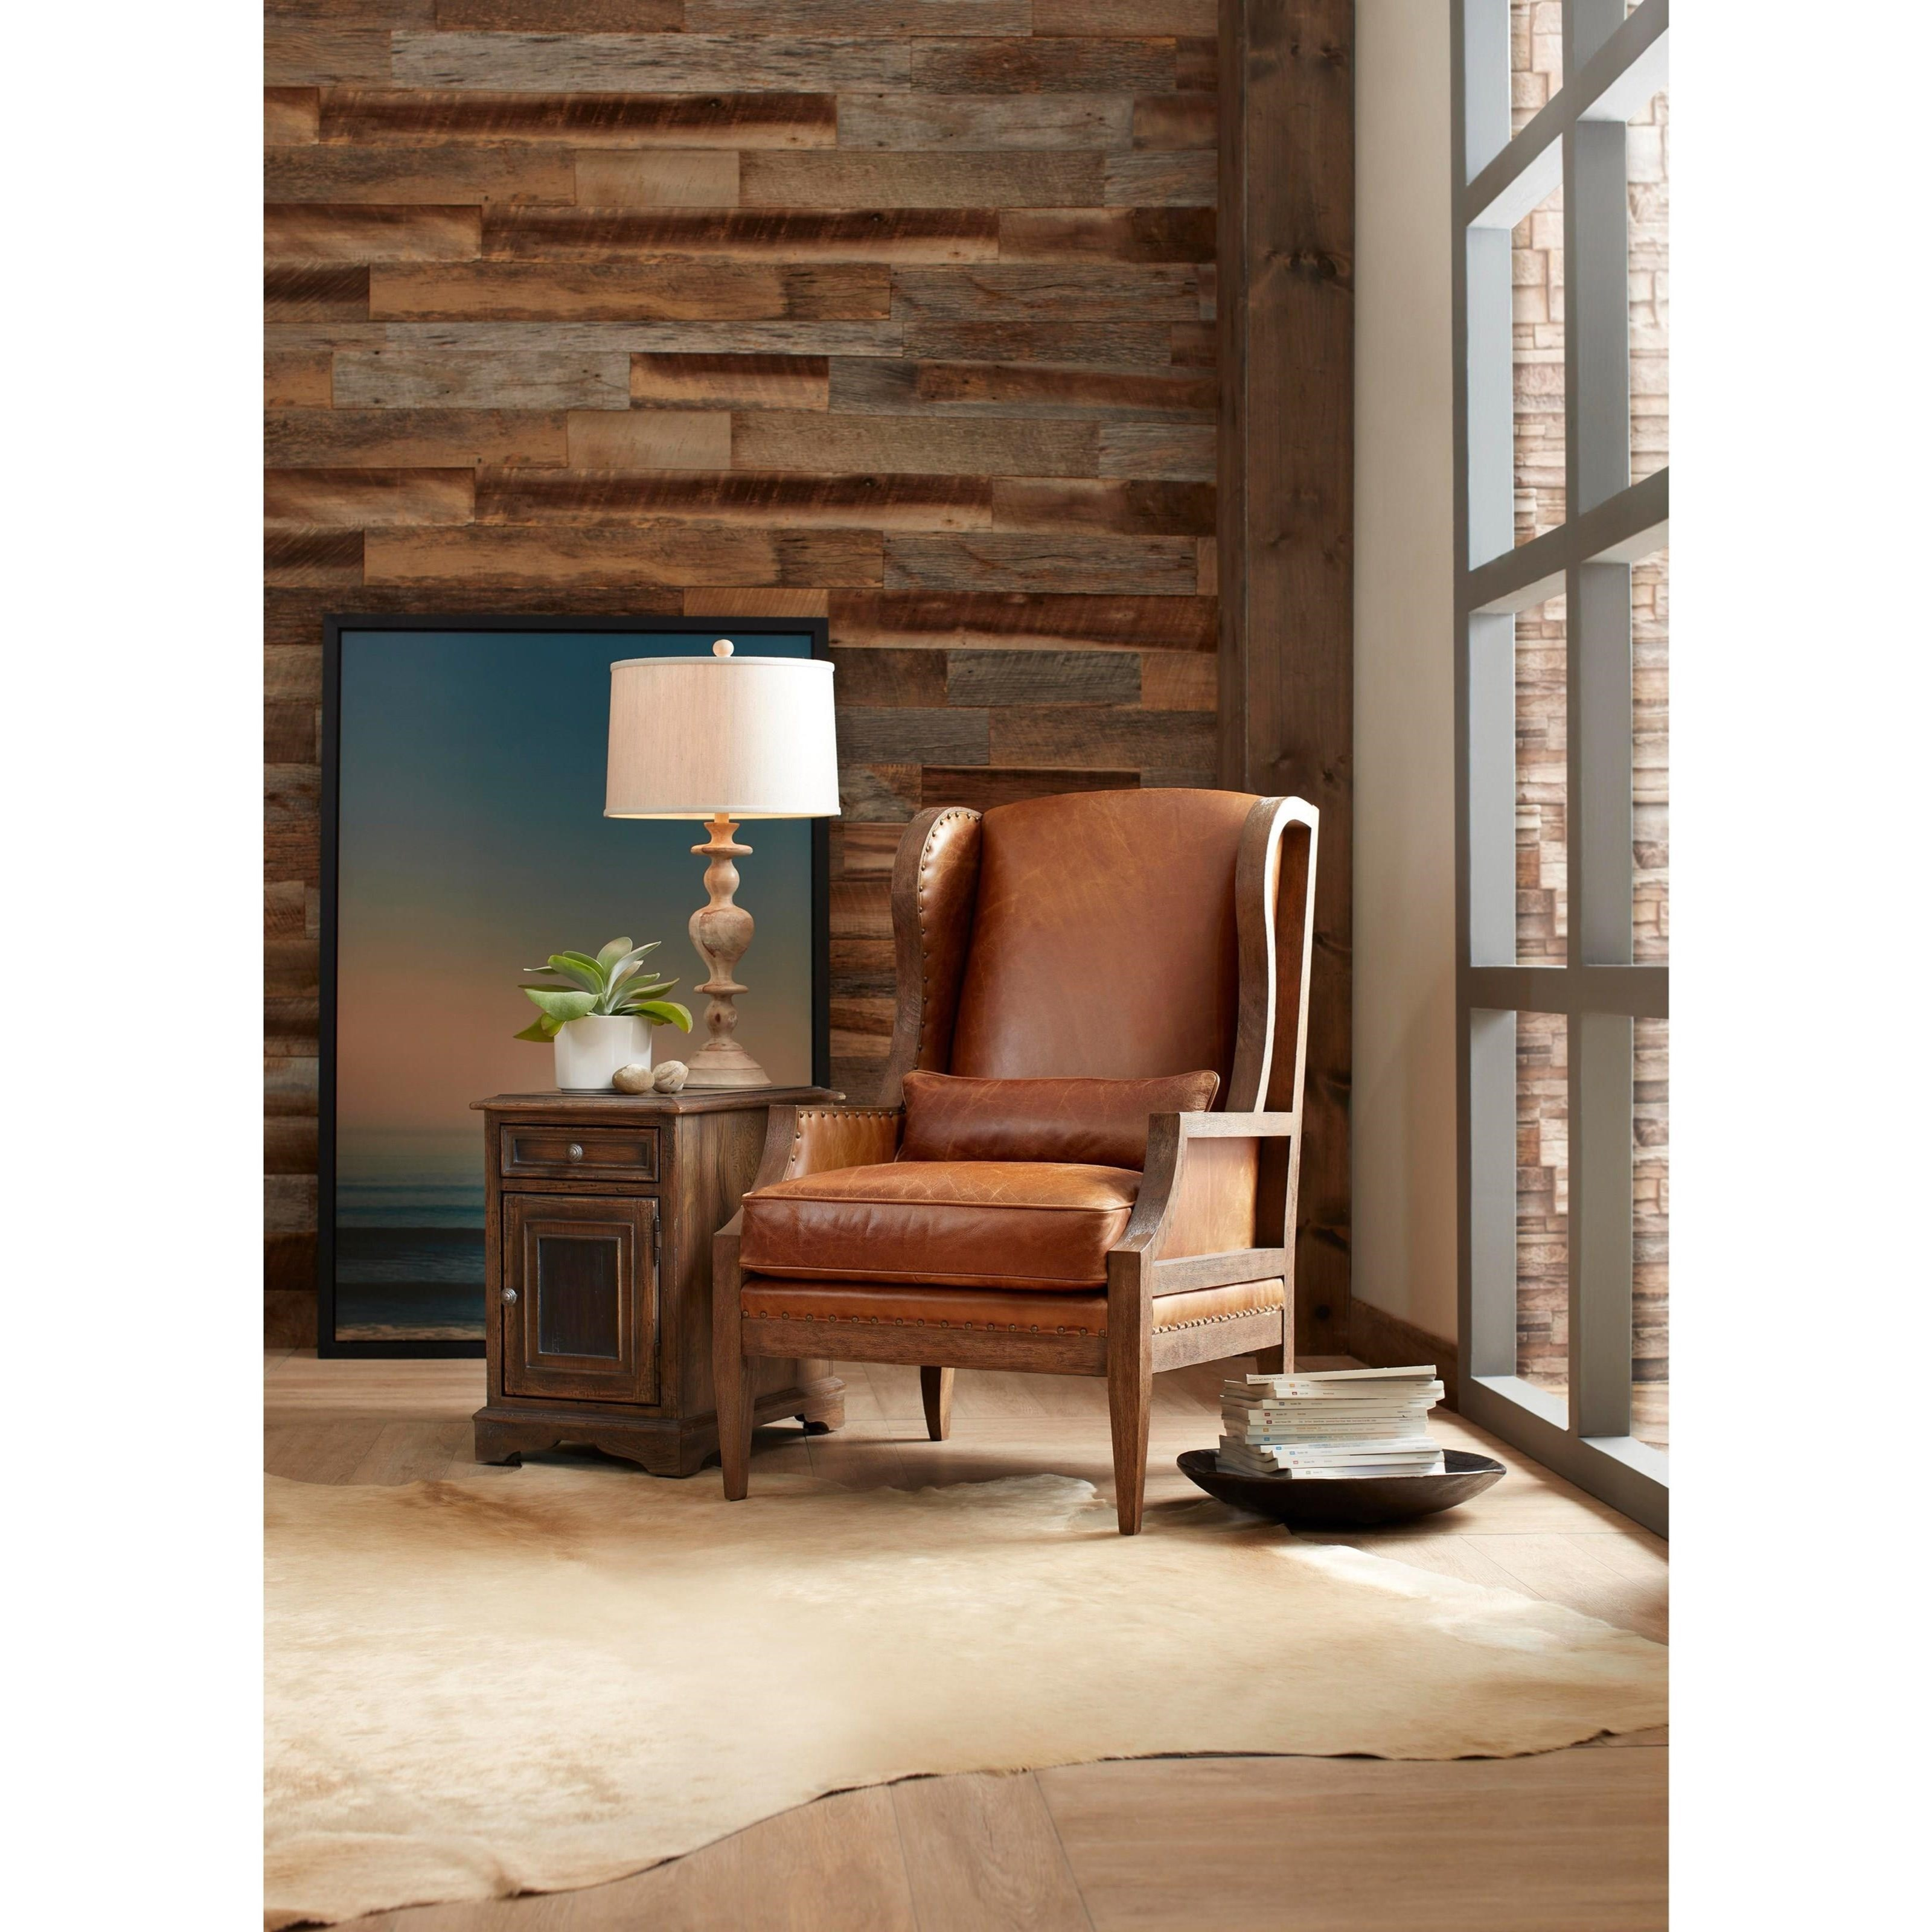 Living Room Ideas To Steal For Comforting Vibe Found In: Hooker Furniture Laurel Exposed Wood Club Chair With Wing